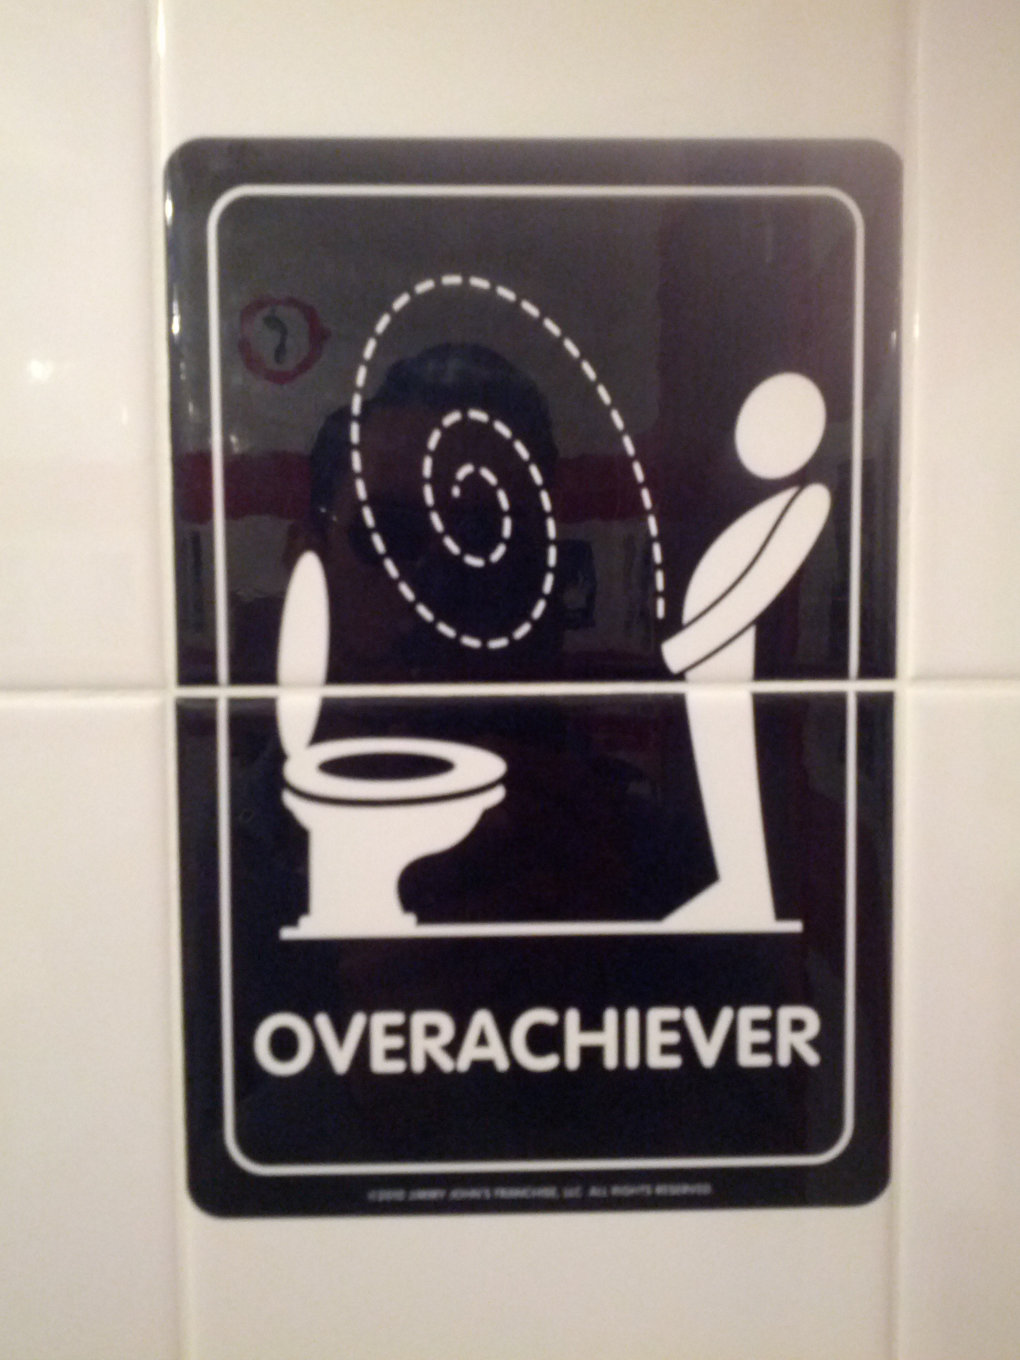 xaxauea - which type of restroom user are you?